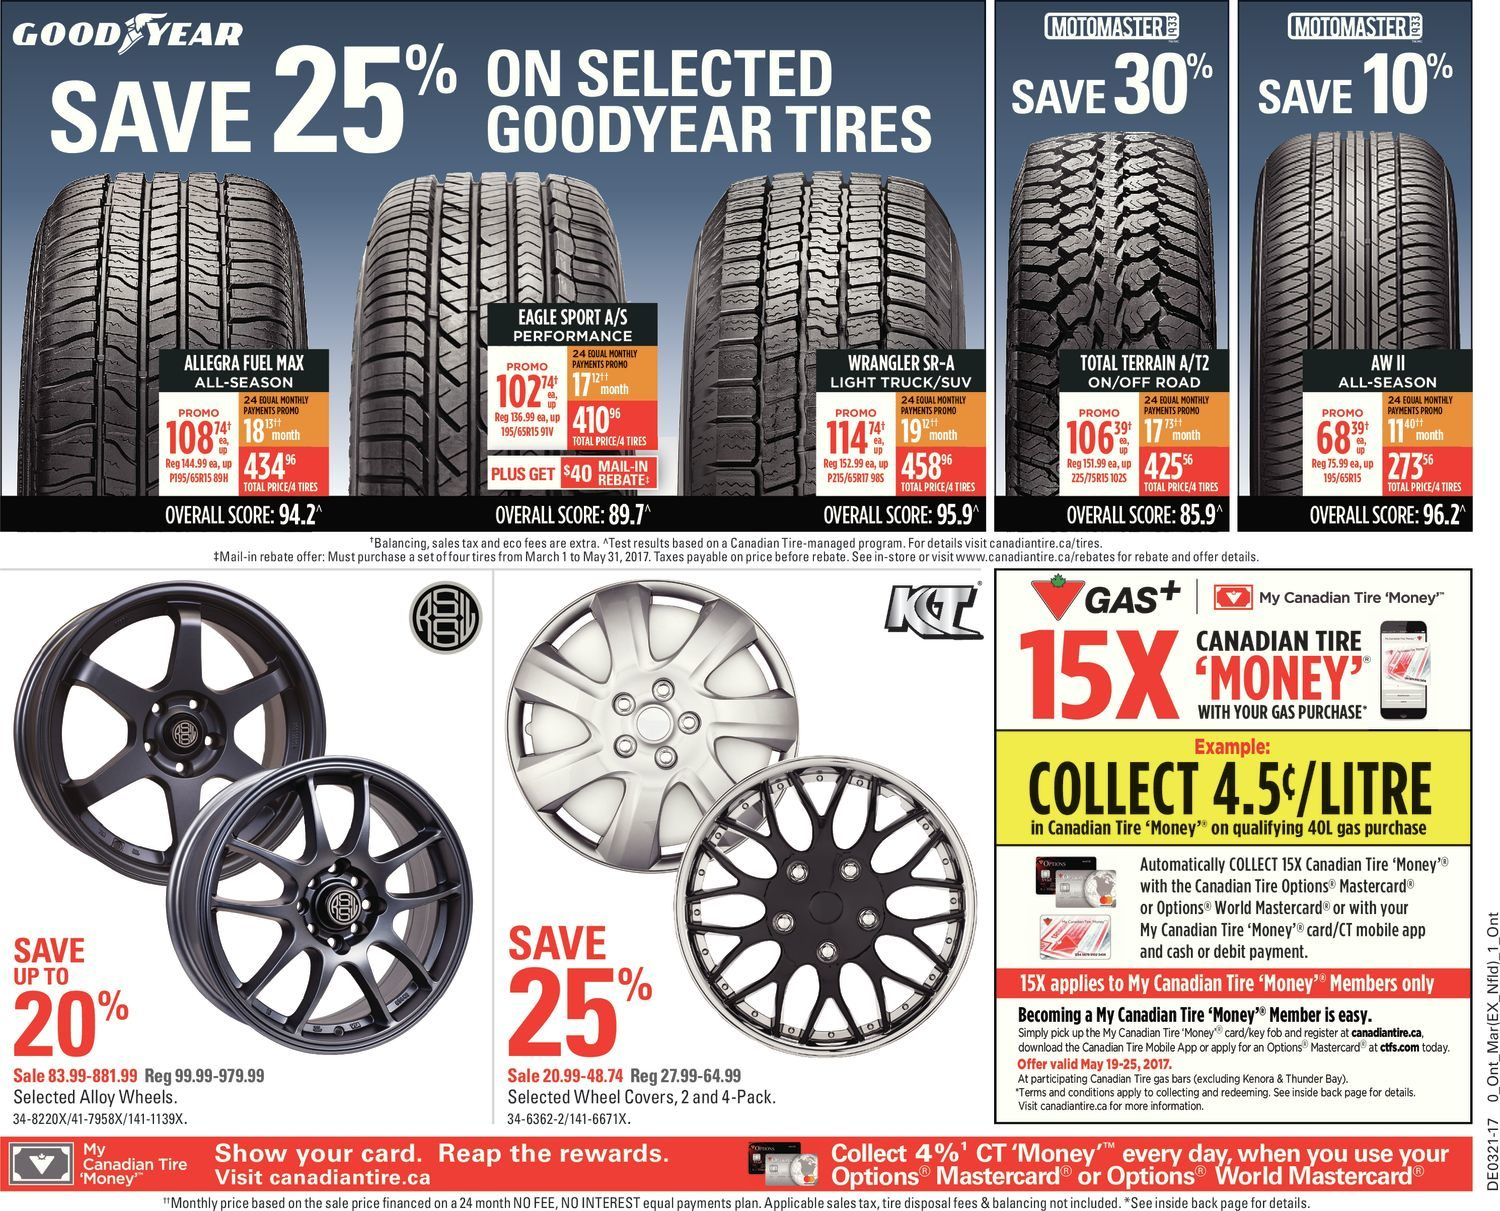 Driving gloves canadian tire - Canadian Tire Weekly Flyer Long Weekend Sale May 19 25 Redflagdeals Com